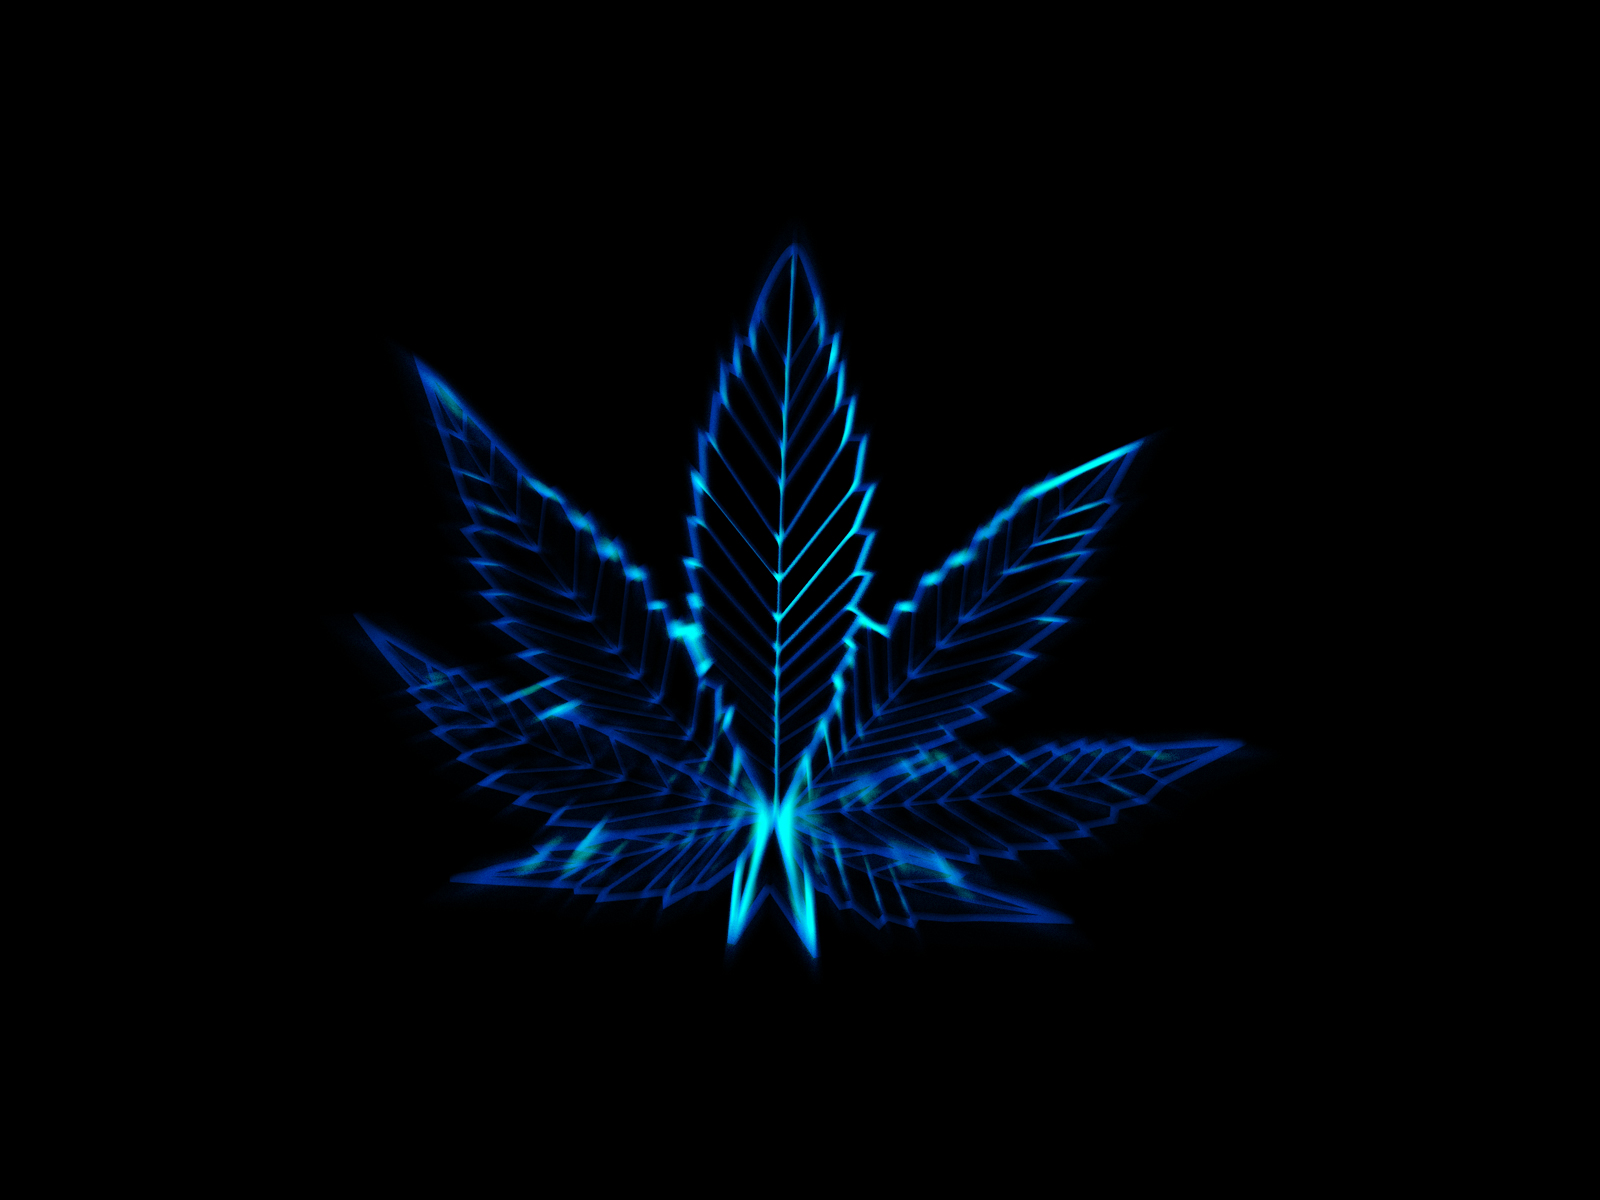 Pot leaves marijuana drugs wallpaper 1600x1200 37369 WallpaperUP 1600x1200